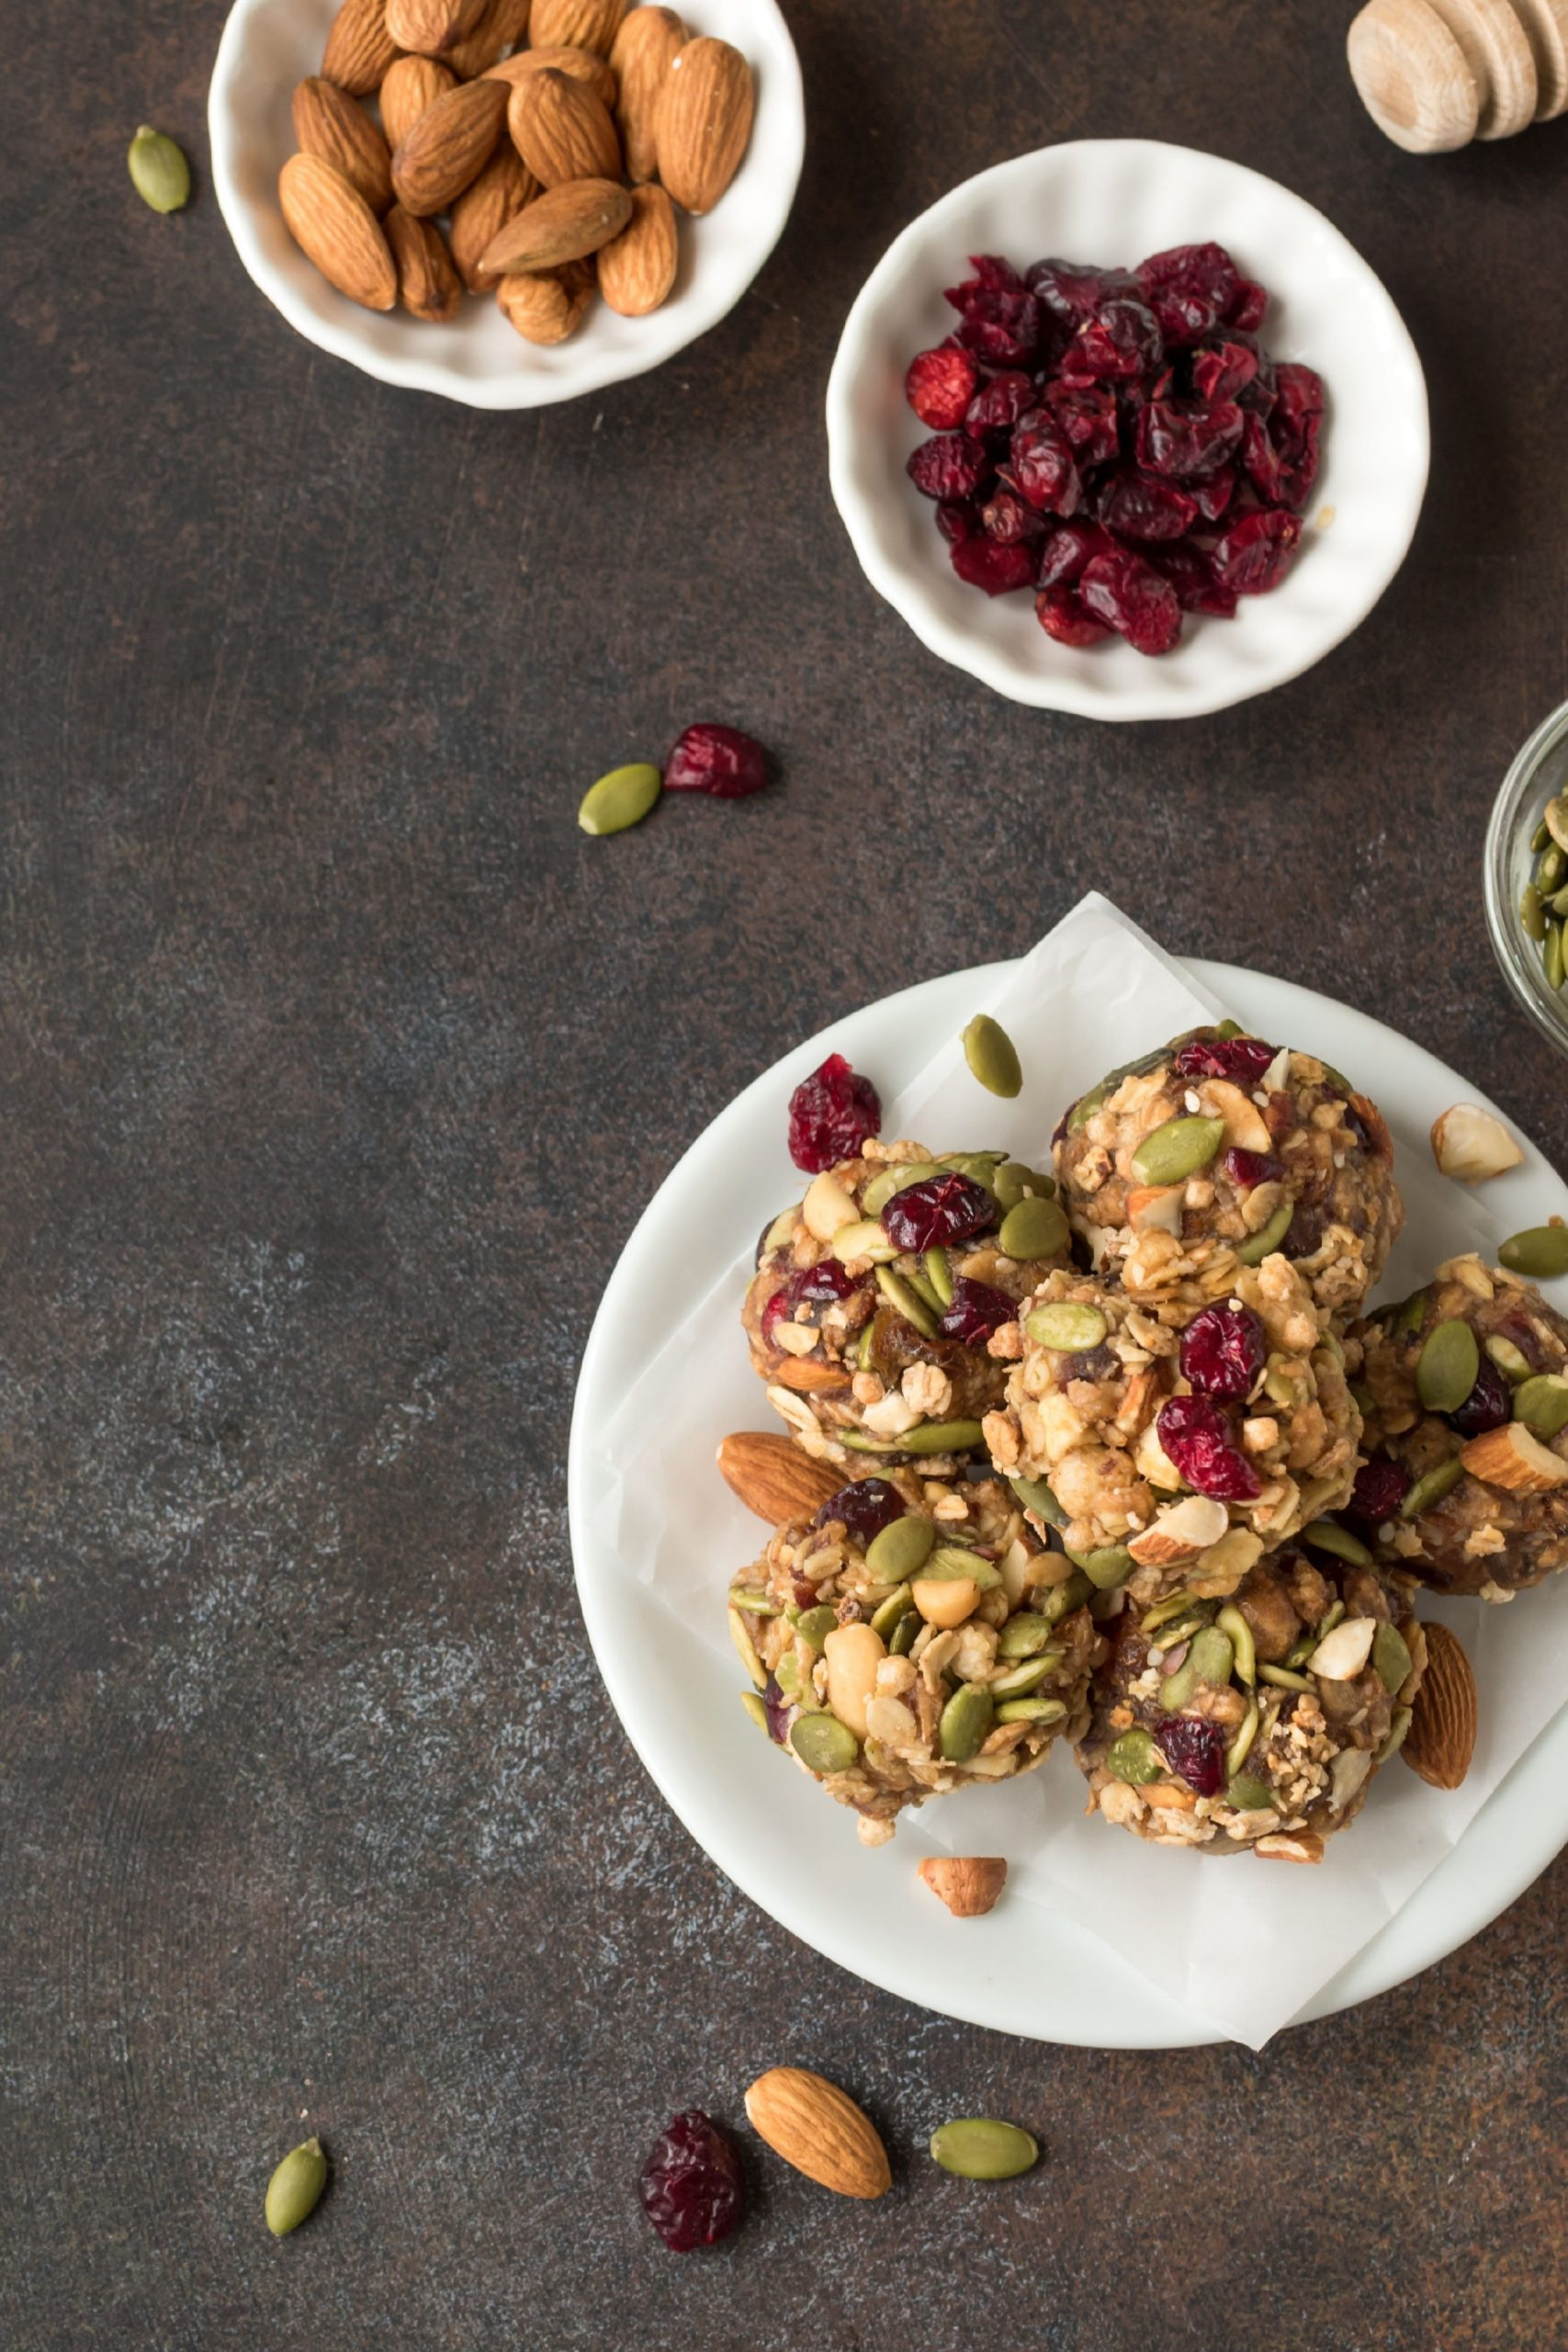 healthy snacks on plates